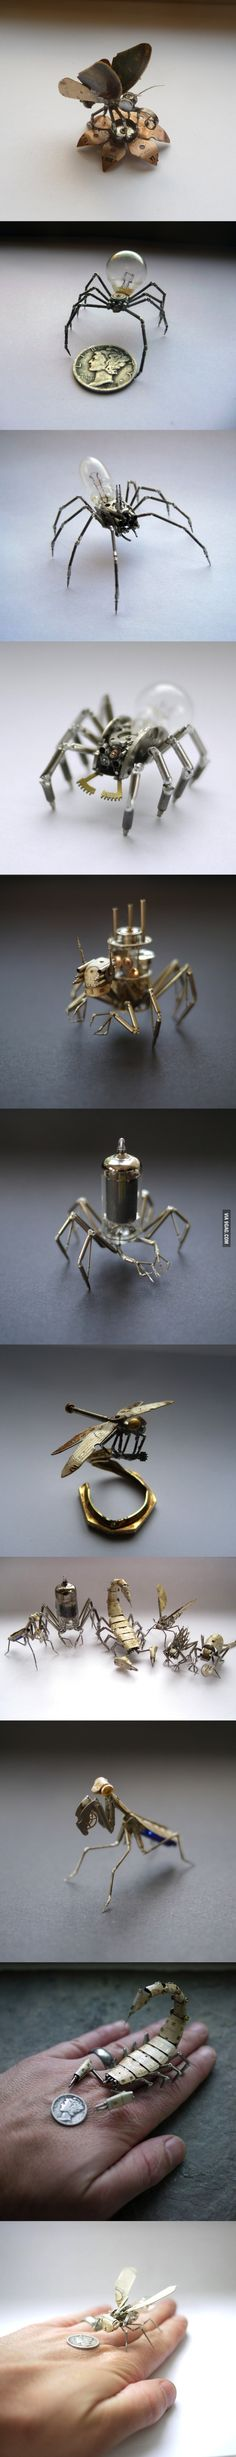 Tiny mechanical insects made of watch parts by Justin Gershenson-Gates.